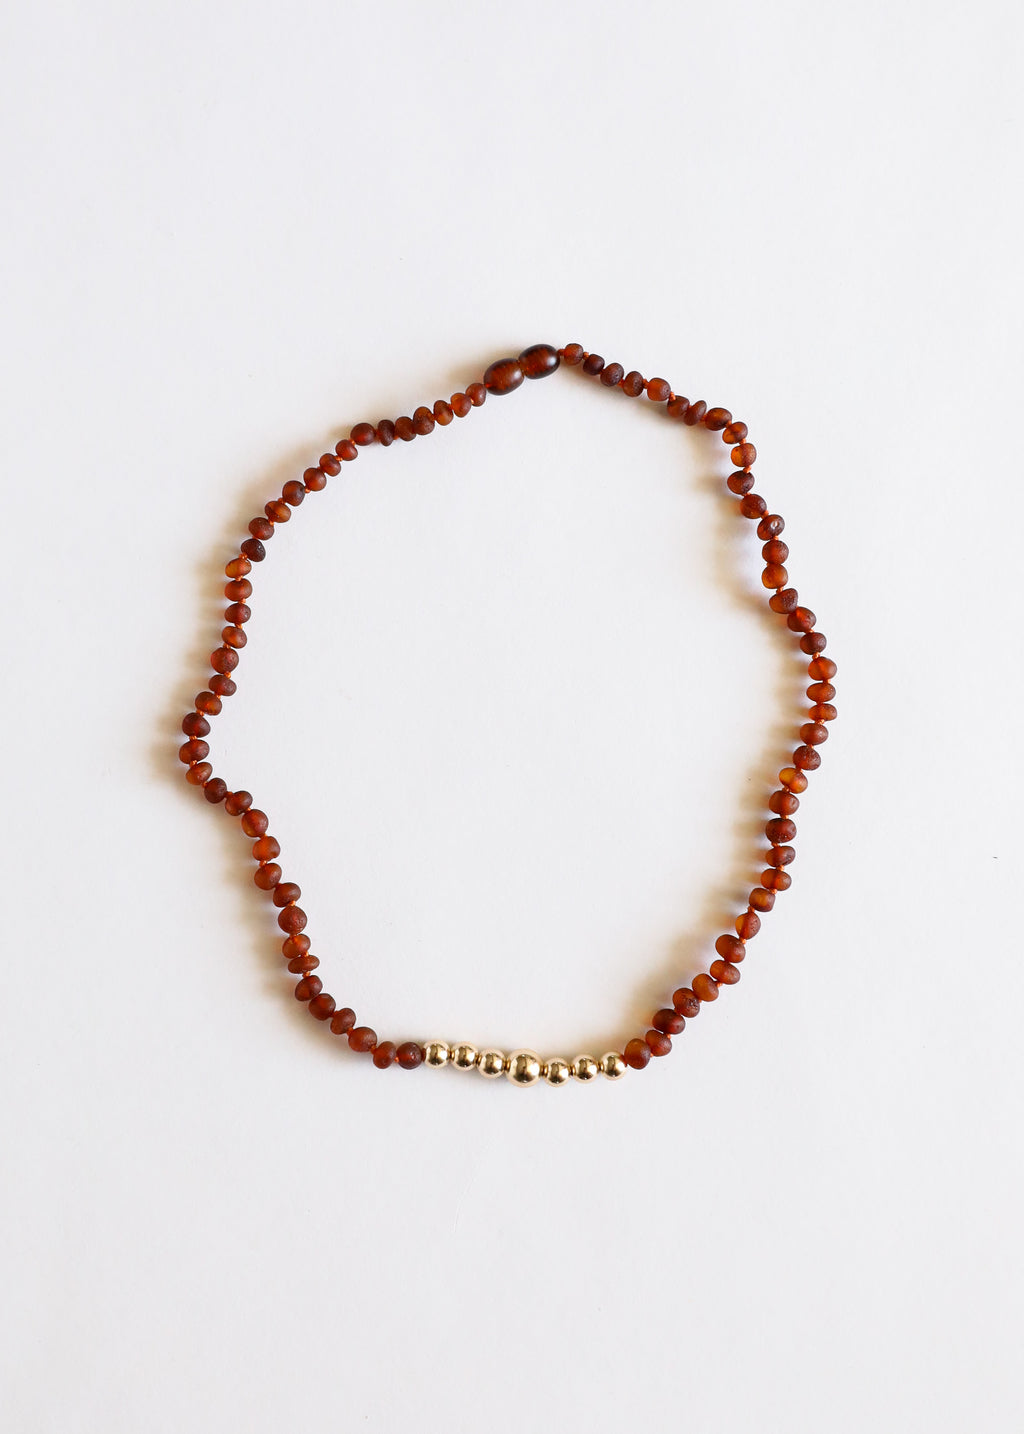 Raw Cognac Amber + 14k Gold || Adult Necklace